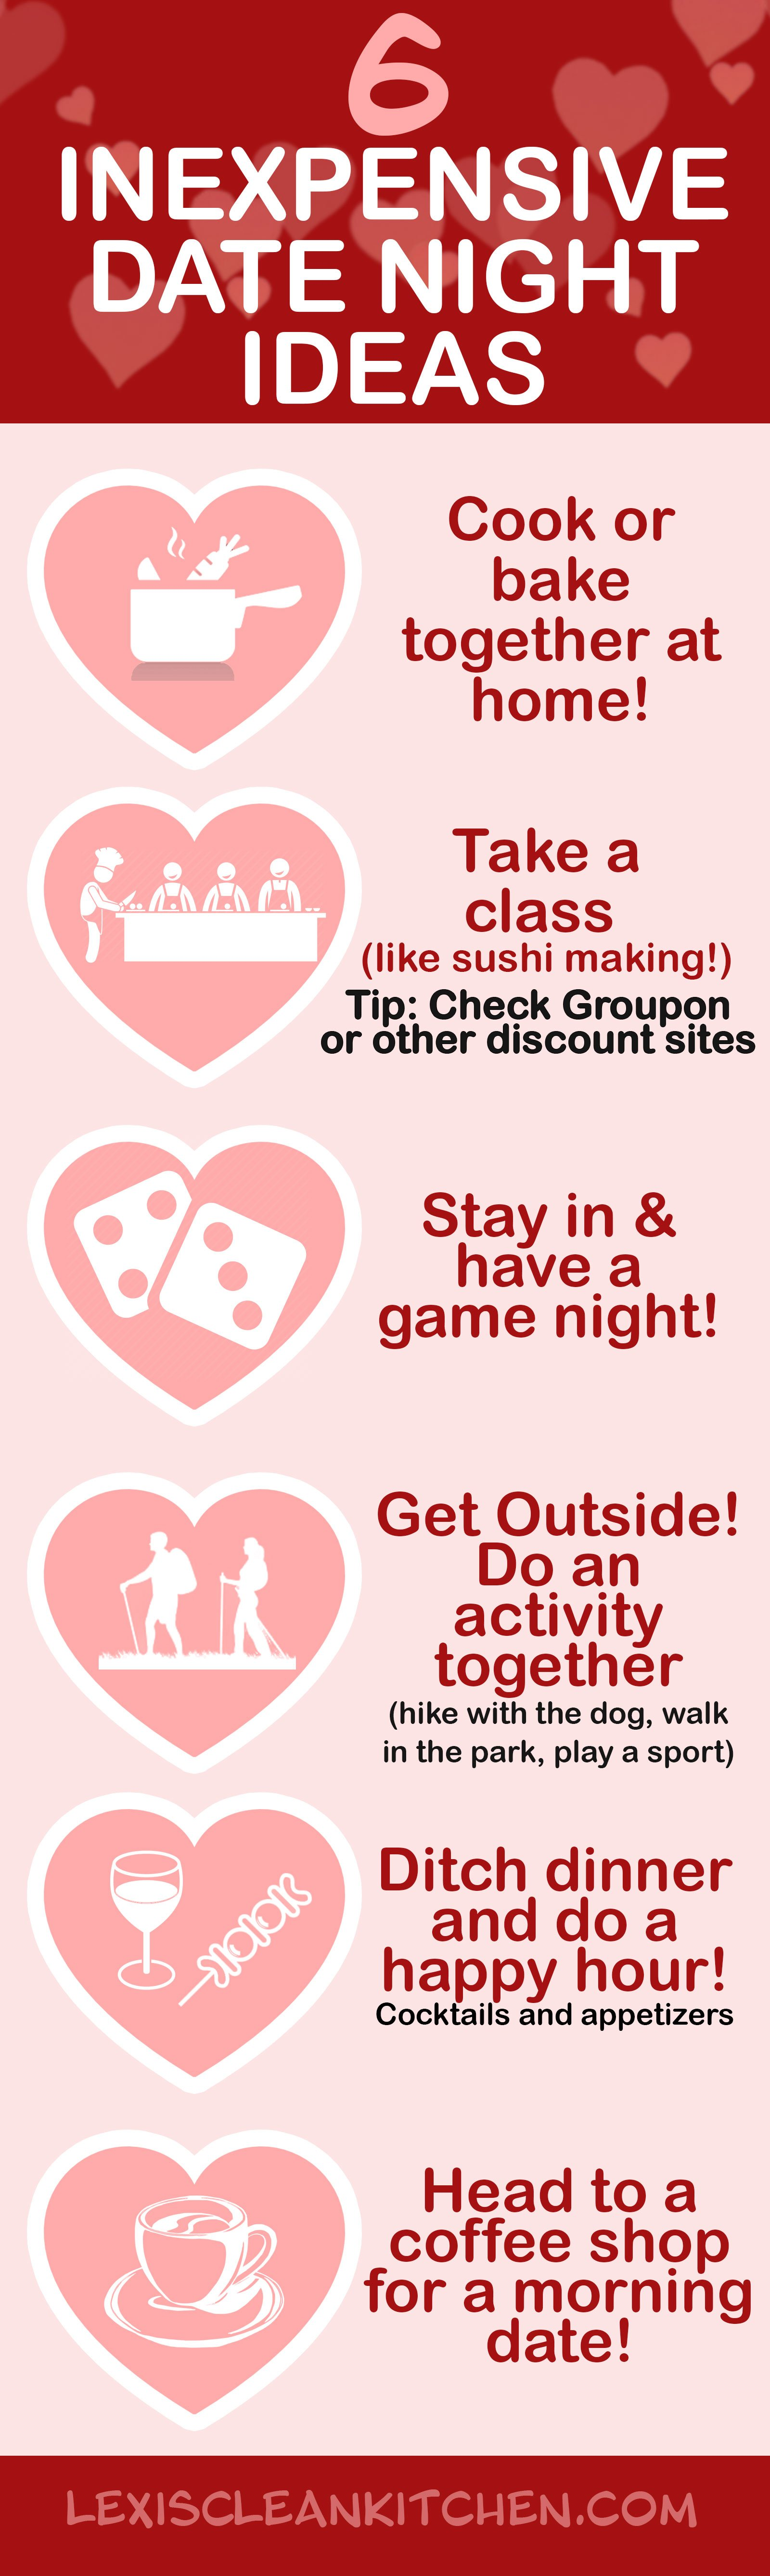 Inexpensive Date Night Ideas